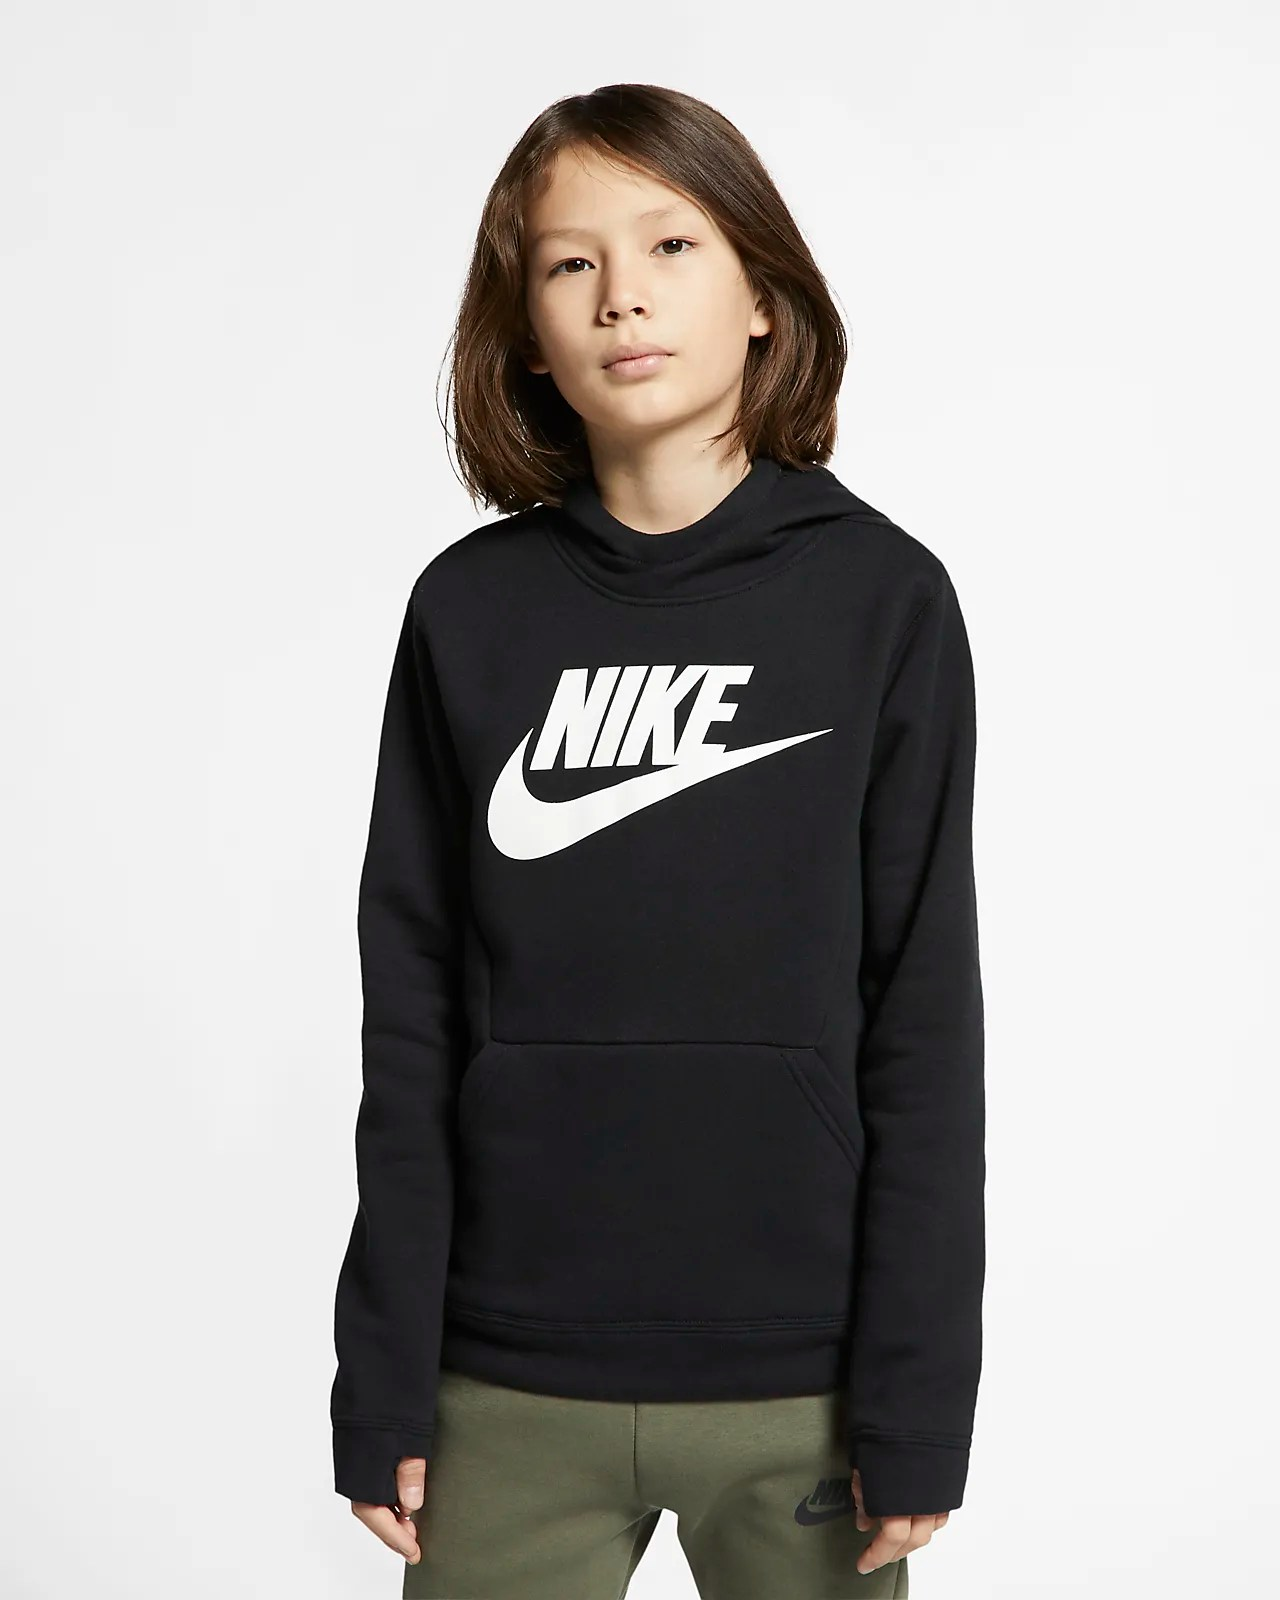 Nike Fleece Kinder Nike Sportswear Fleece Hoodie Für ältere Kinder